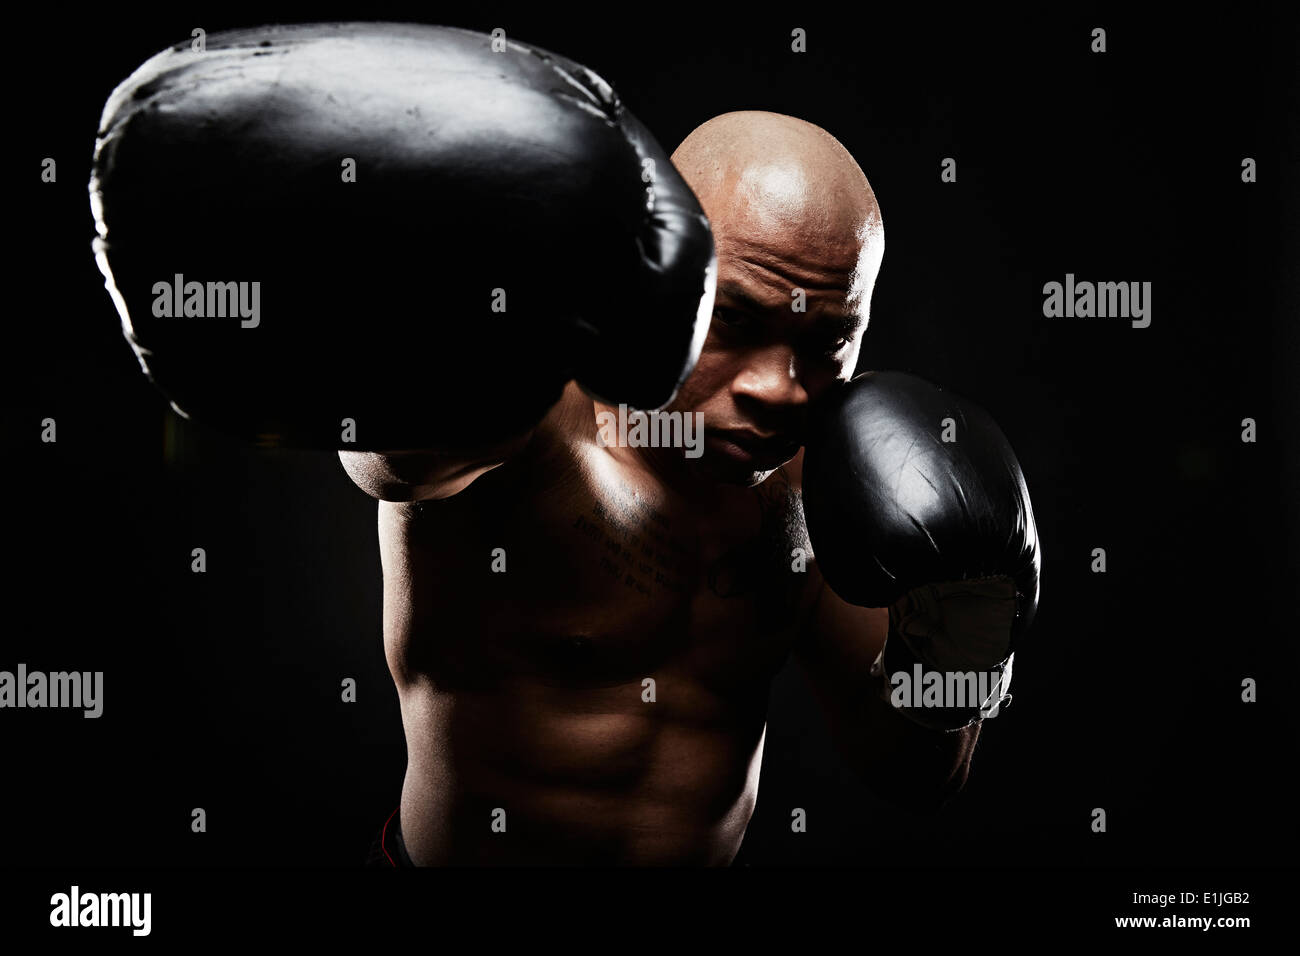 Boxer with black boxing gloves punching towards camera - Stock Image